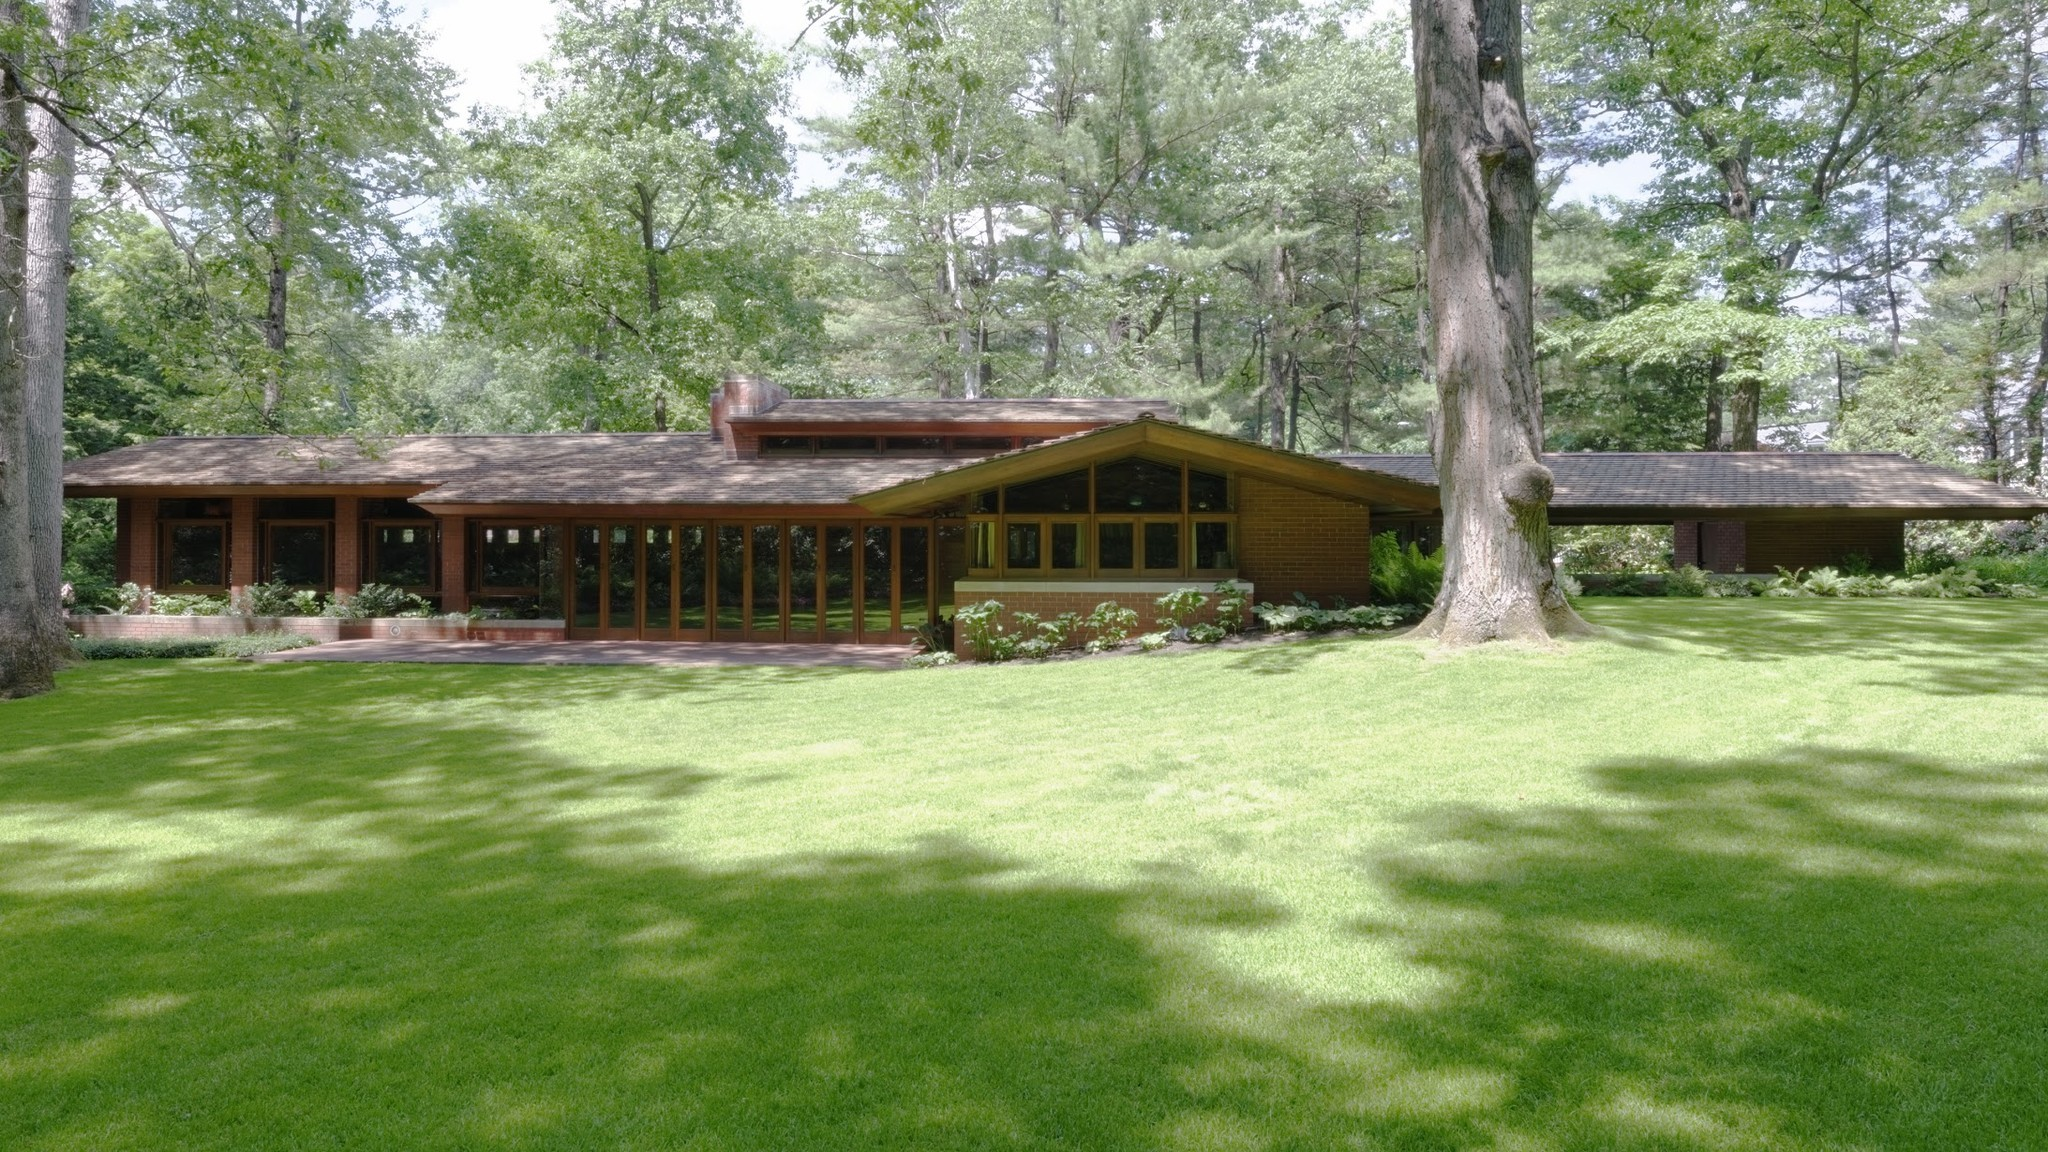 Special tours of the Zimmerman House in Manchester, N.H., are being offered throughout 2017 to celebrate the 150th anniversary of Frank Lloyd Wright's birth.